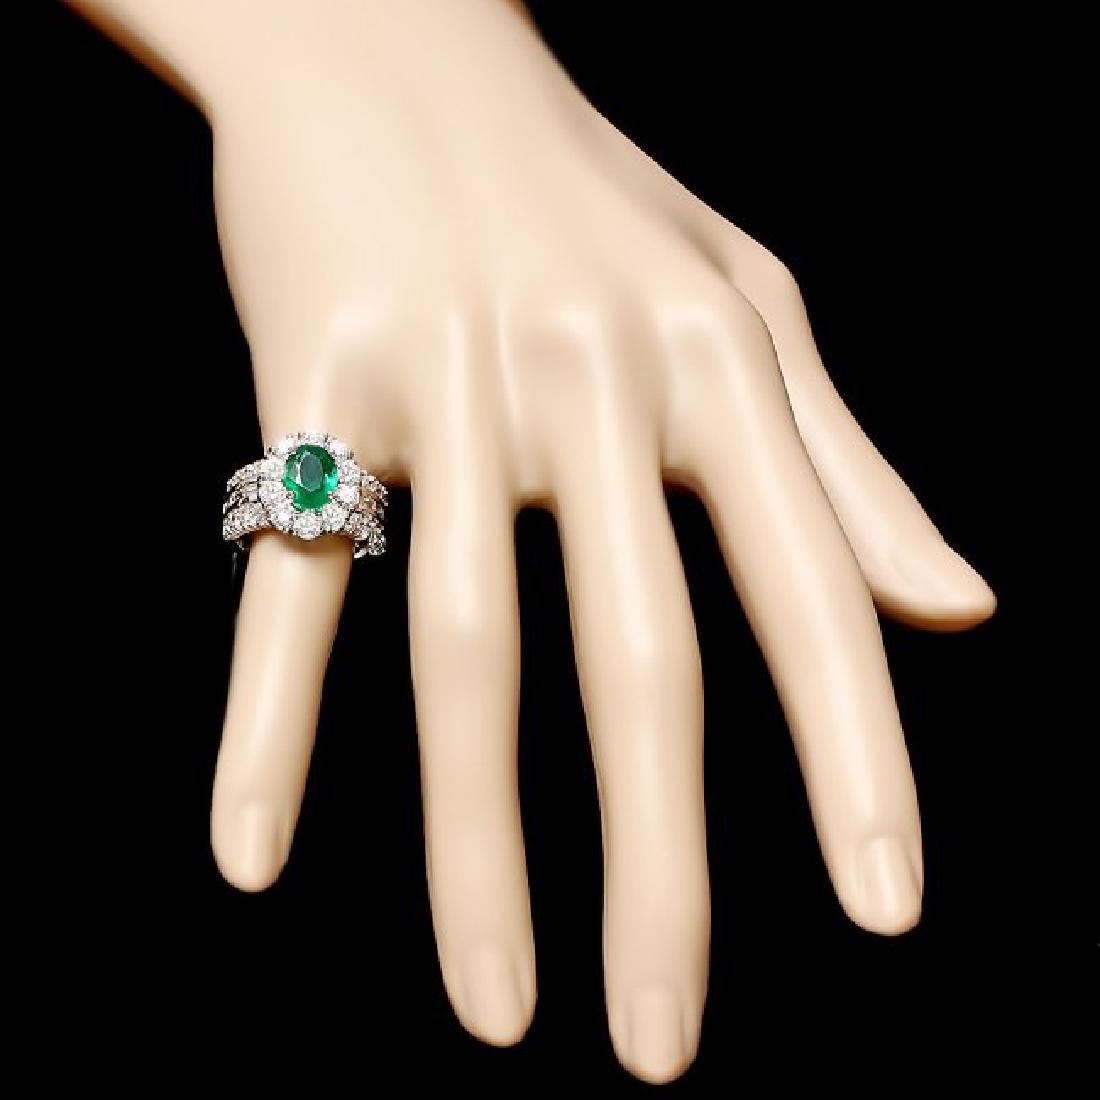 14k White Gold 2.10ct Emerald 3ct Diamond Ring - 4